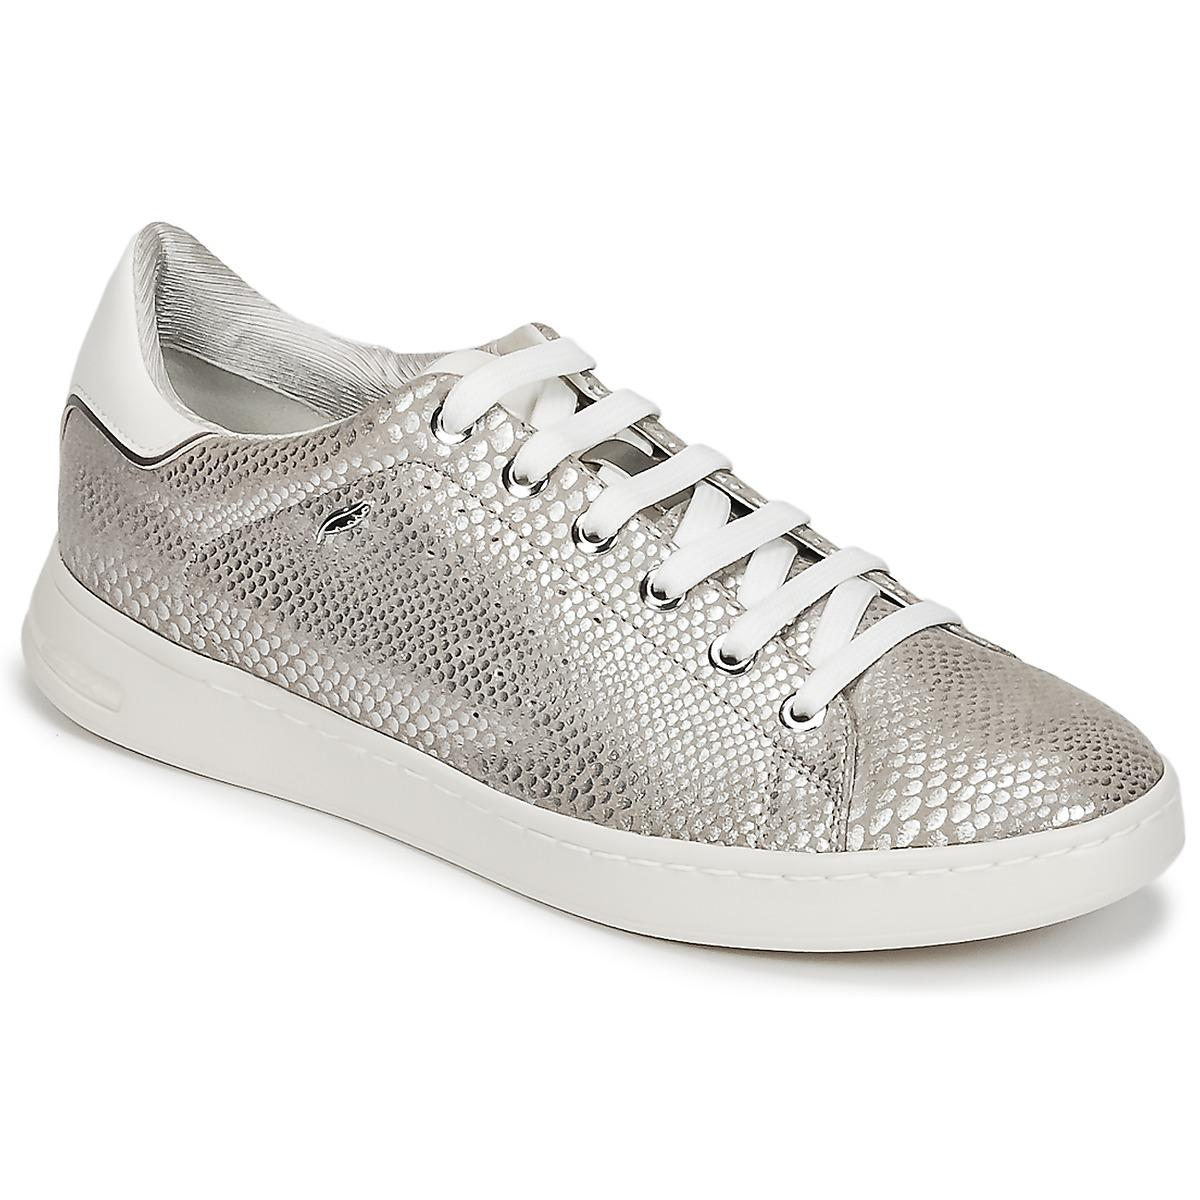 Shoes Jaysen A In Lyst Metallic trainers Geox D qft1x7W